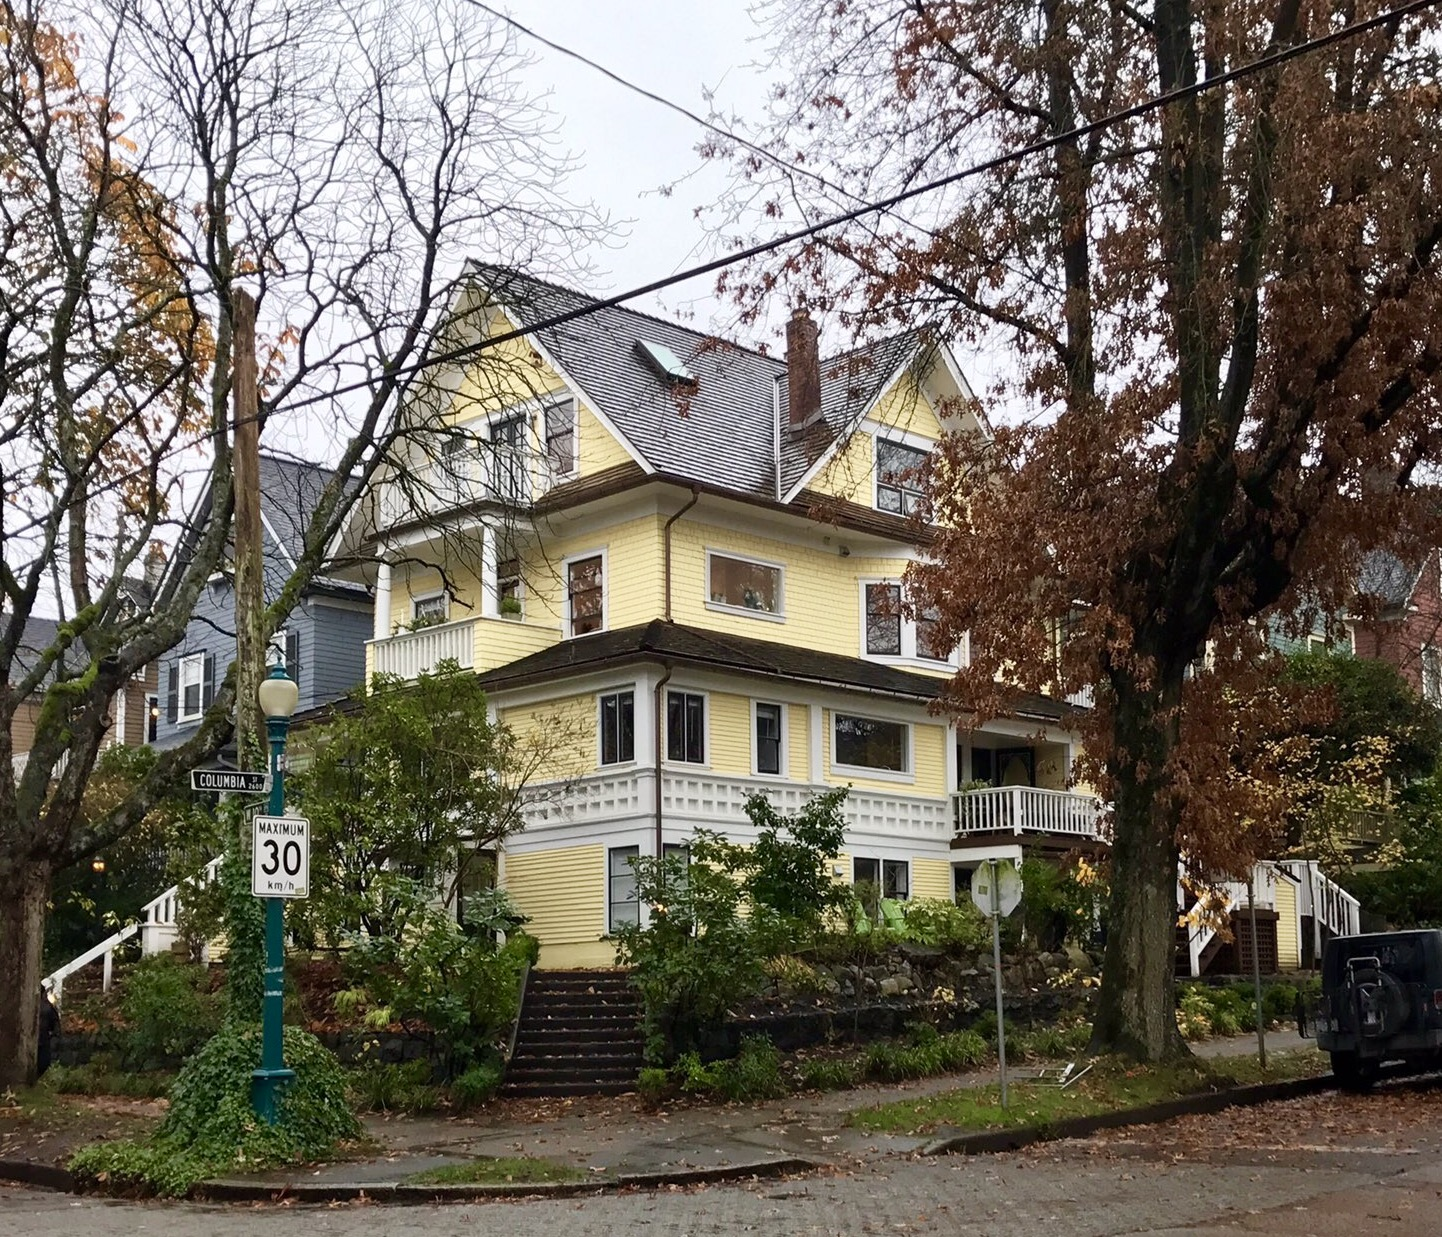 Vancouver Housing: Character Home Zoning Review : Open Letter To The City Of